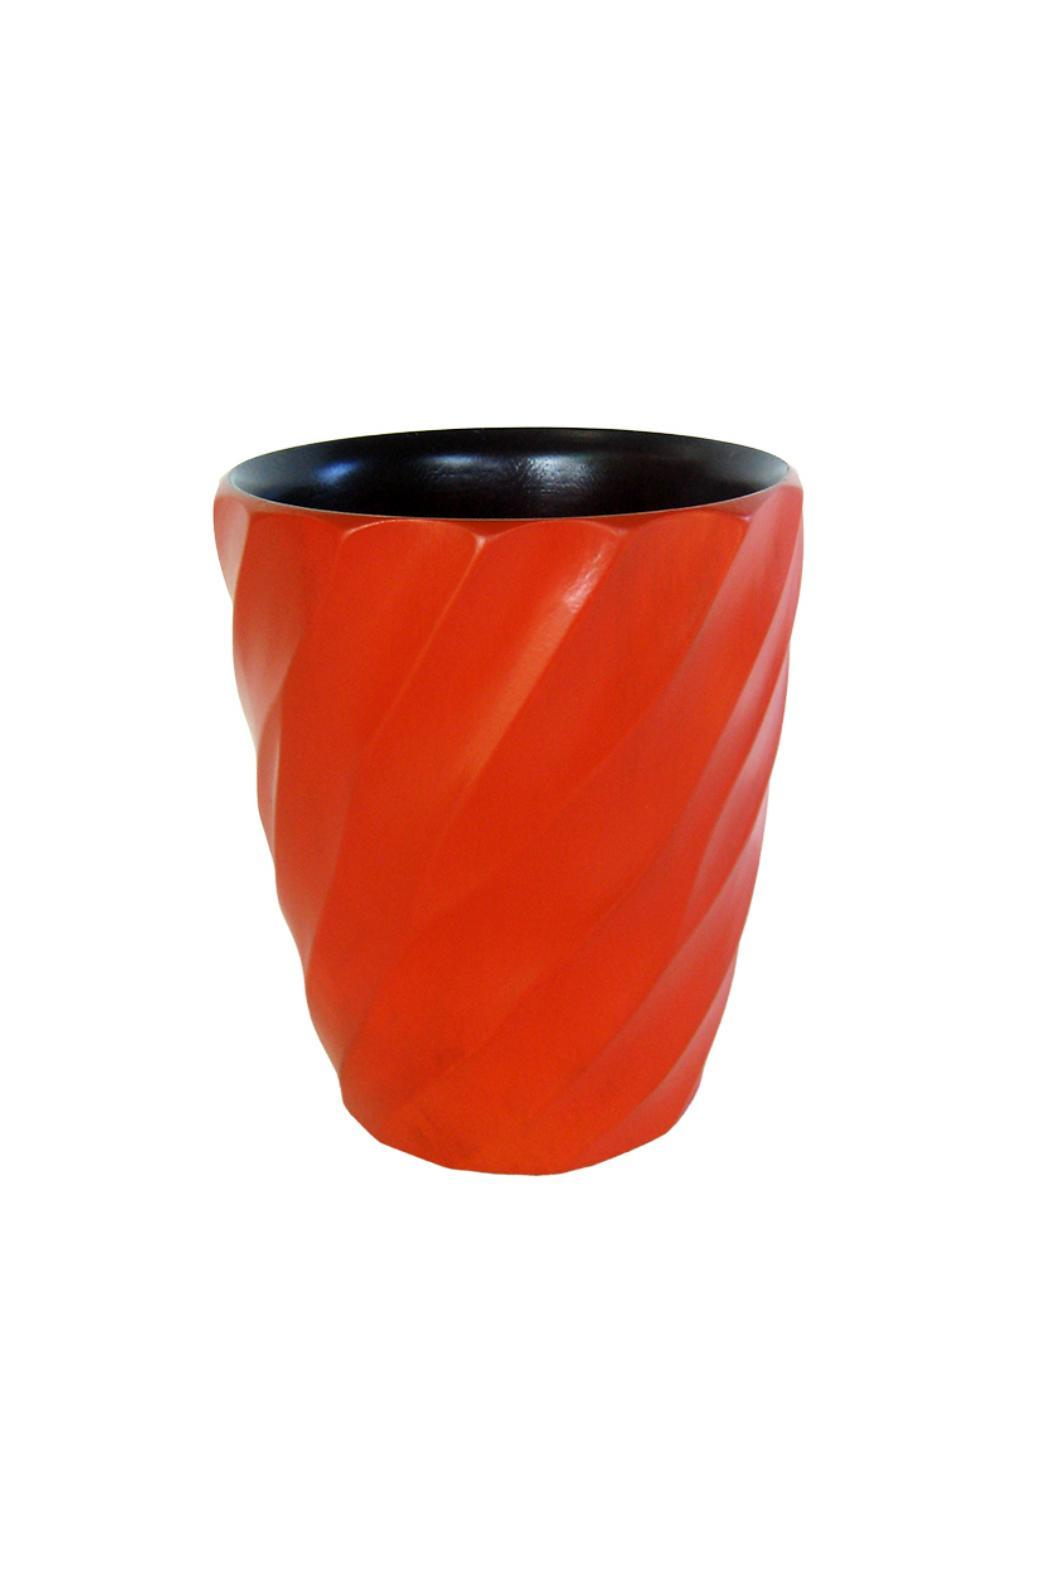 Tangerine Utensile Vase From Tennessee By Sherry 39 S